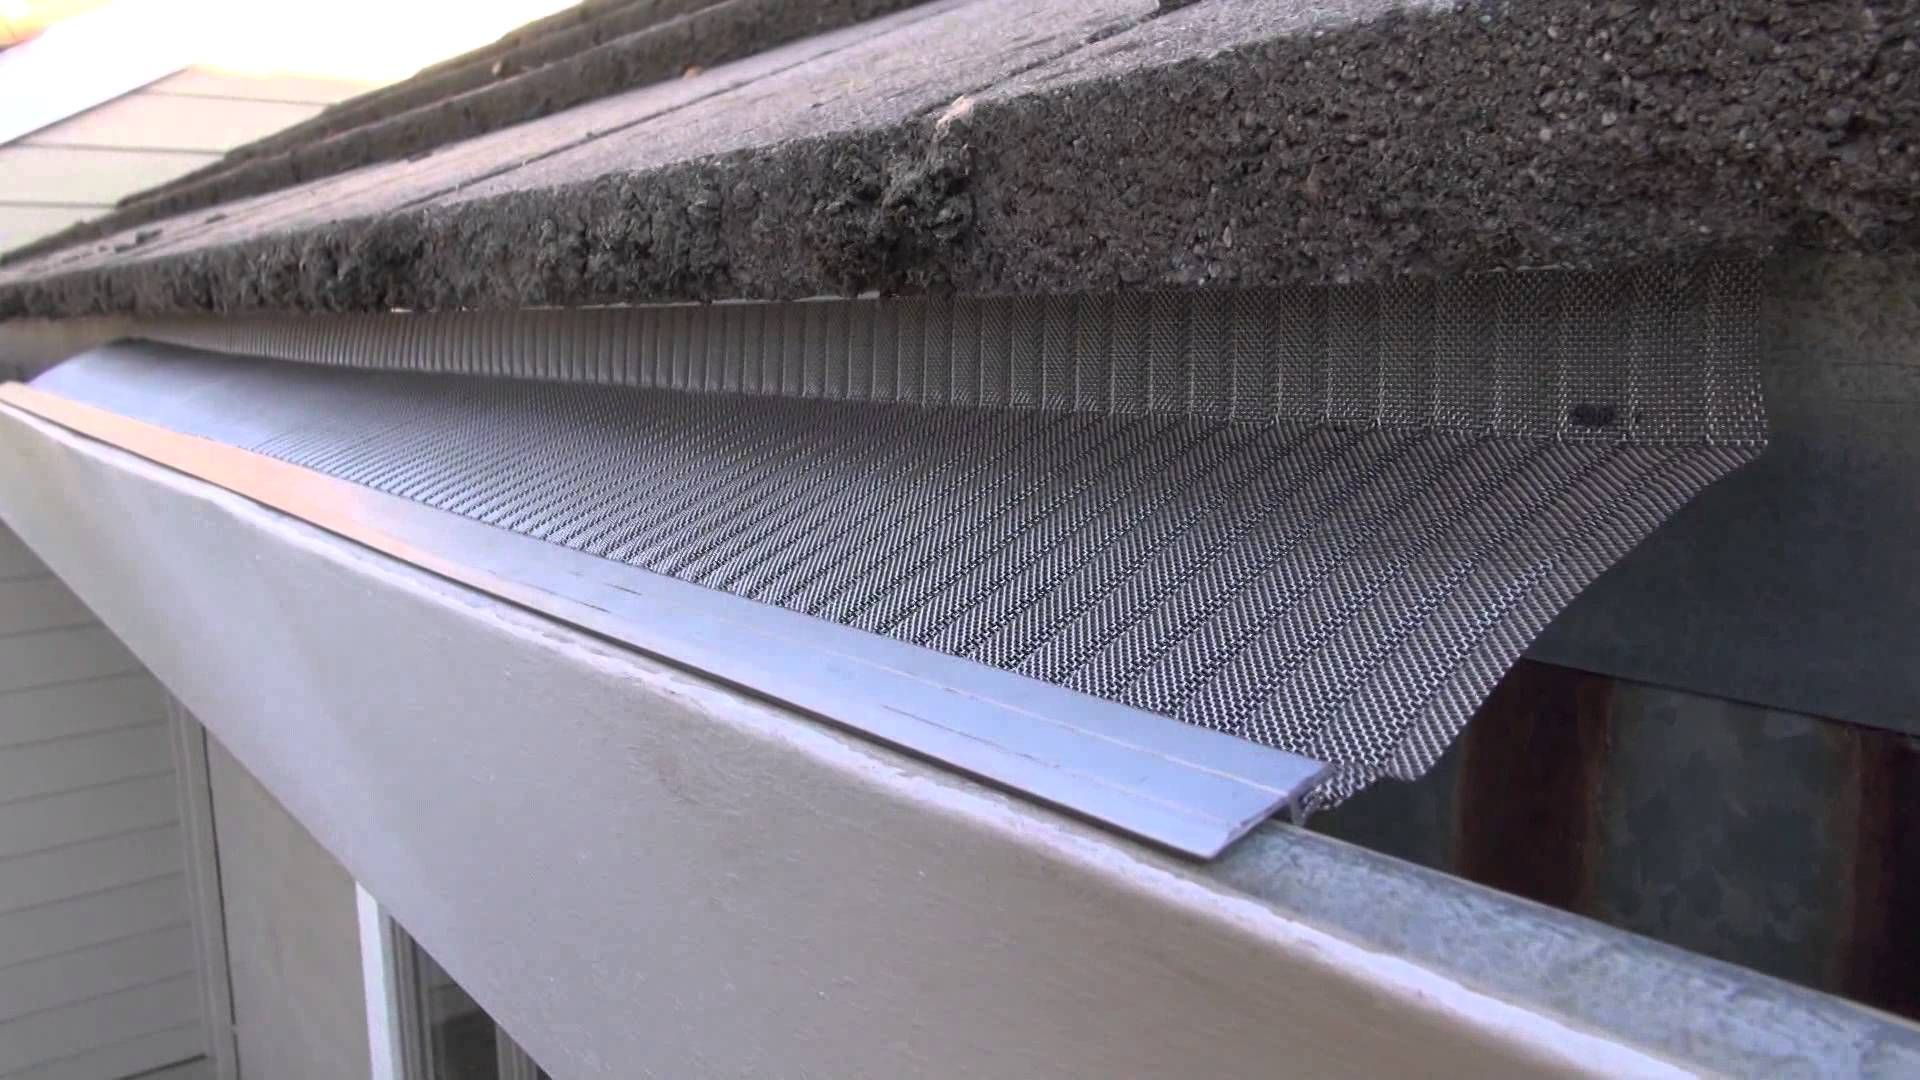 Sunshine Gutters Pro Provides You With The Installing Rain Gutters Services That You Have Always Wan How To Install Gutters Rain Gutter Installation Gutters